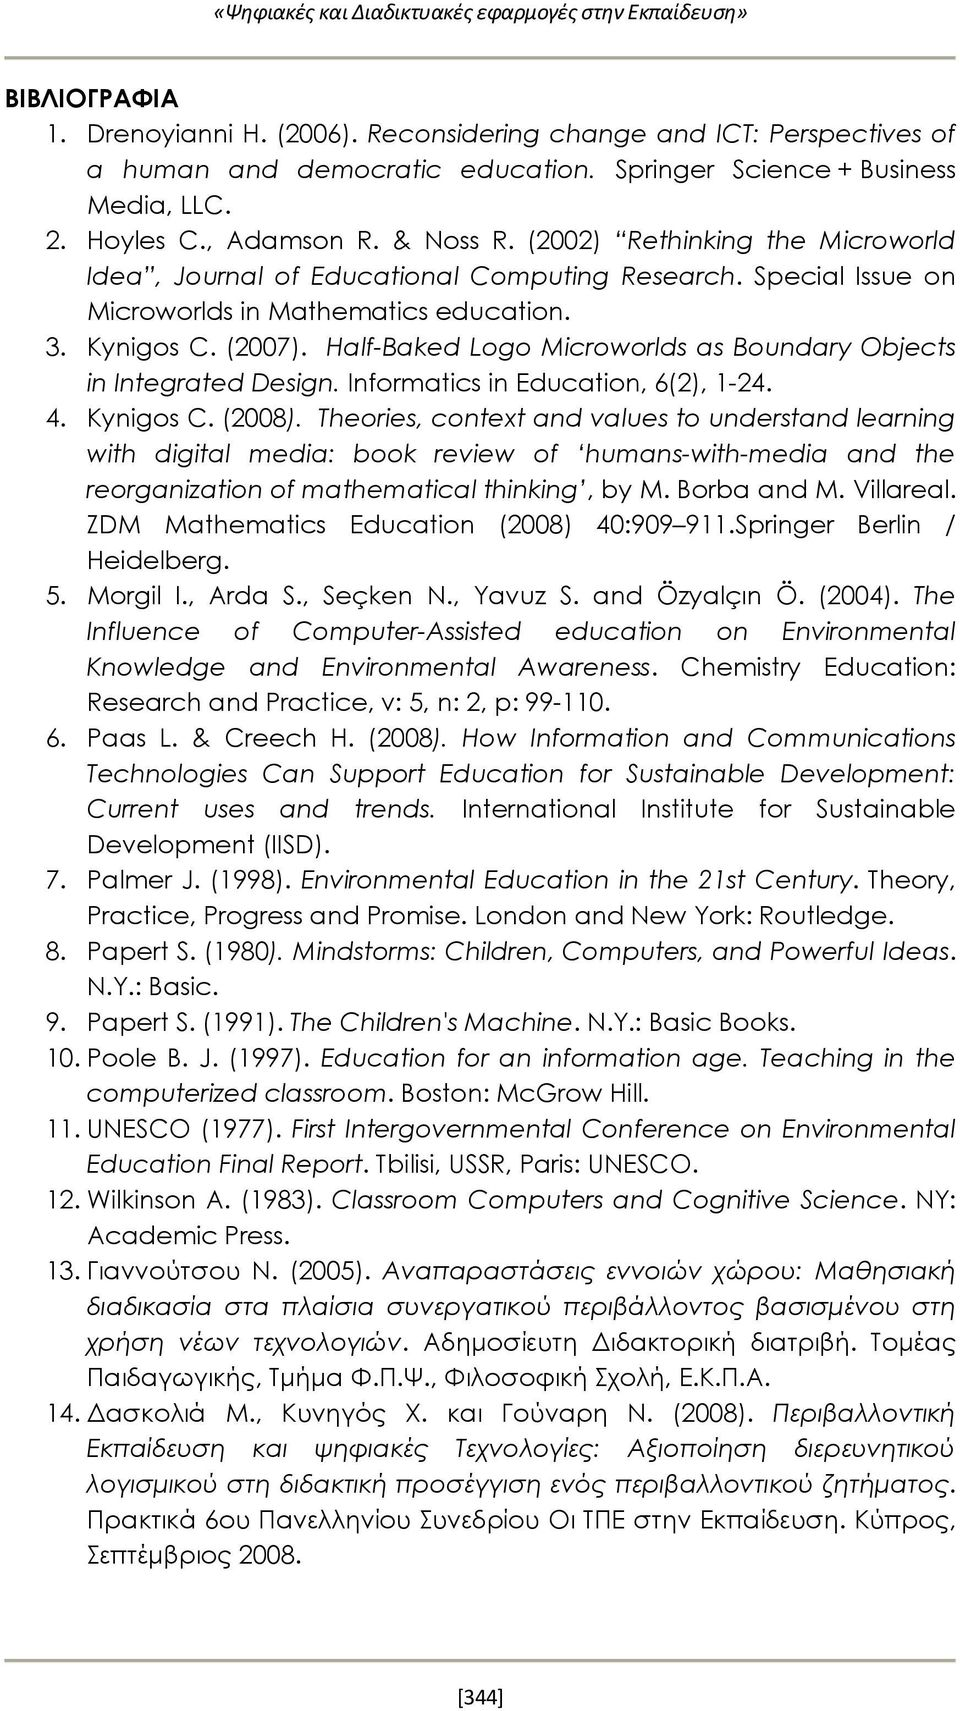 Special Issue on Microworlds in Mathematics education. 3. Kynigos C. (2007). Half-Baked Logo Microworlds as Boundary Objects in Integrated Design. Informatics in Education, 6(2), 1-24. 4. Kynigos C. (2008).